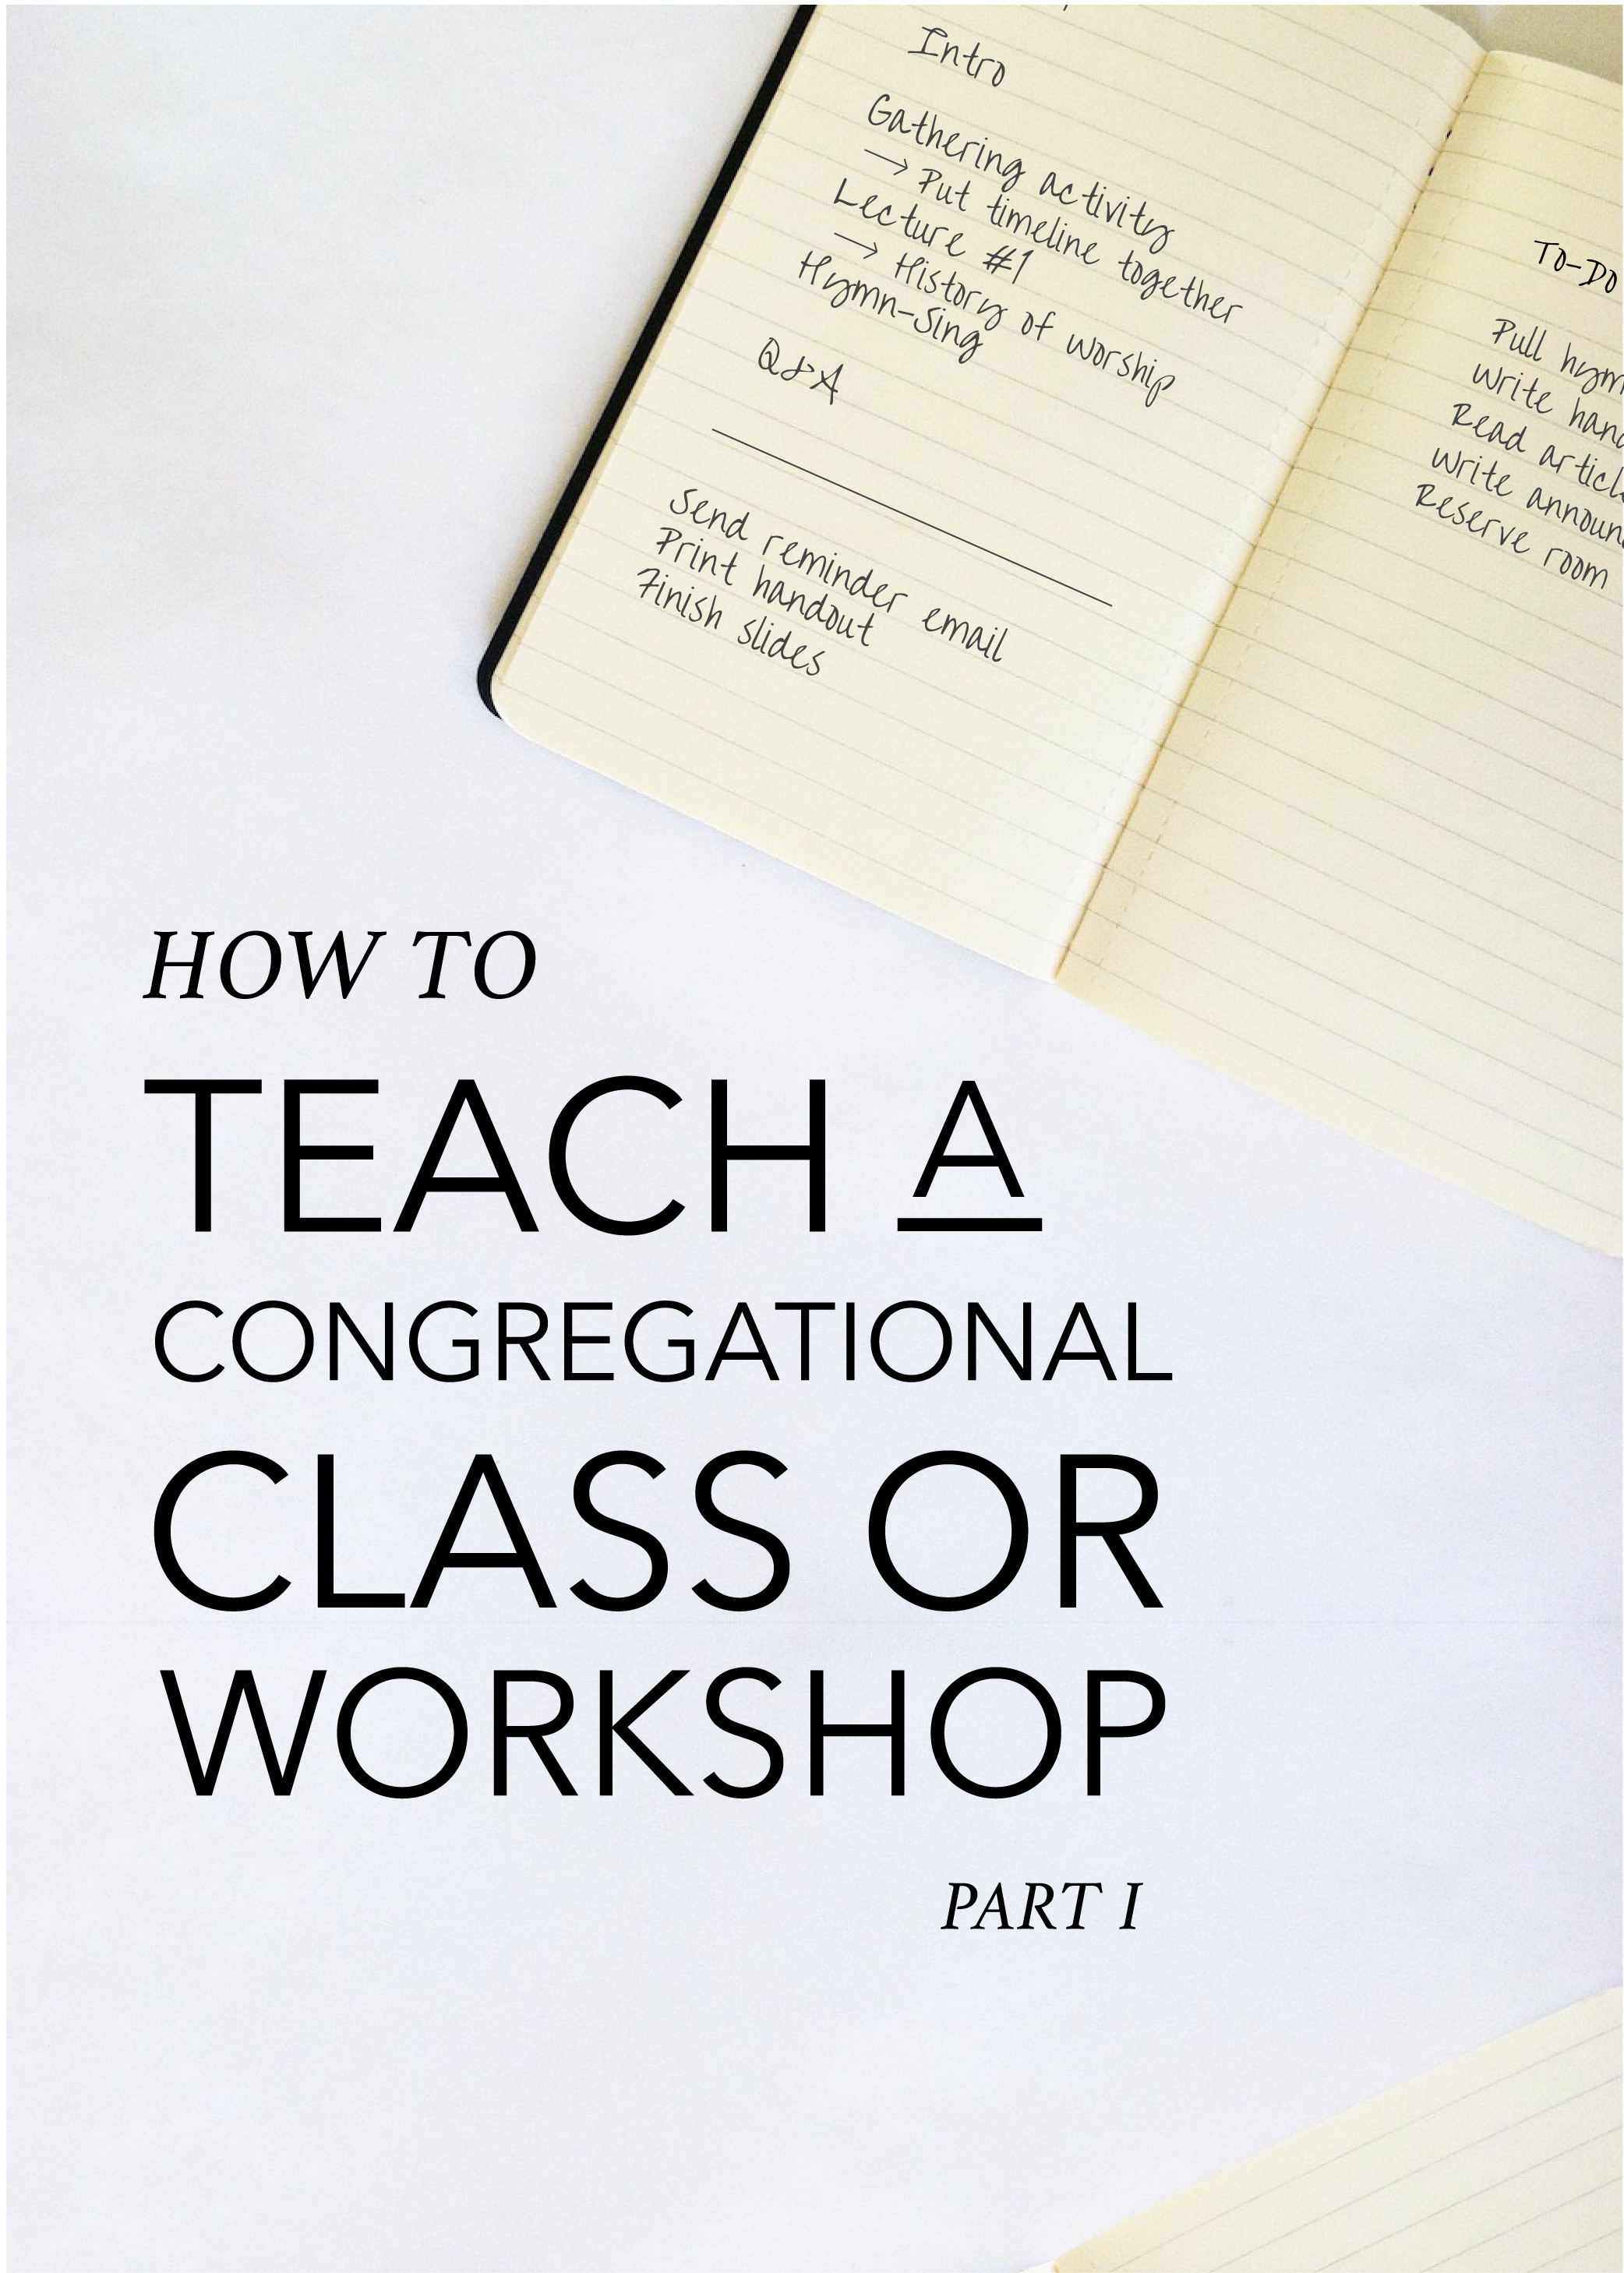 How to Teach a Congregational Class or Workshop-01.png